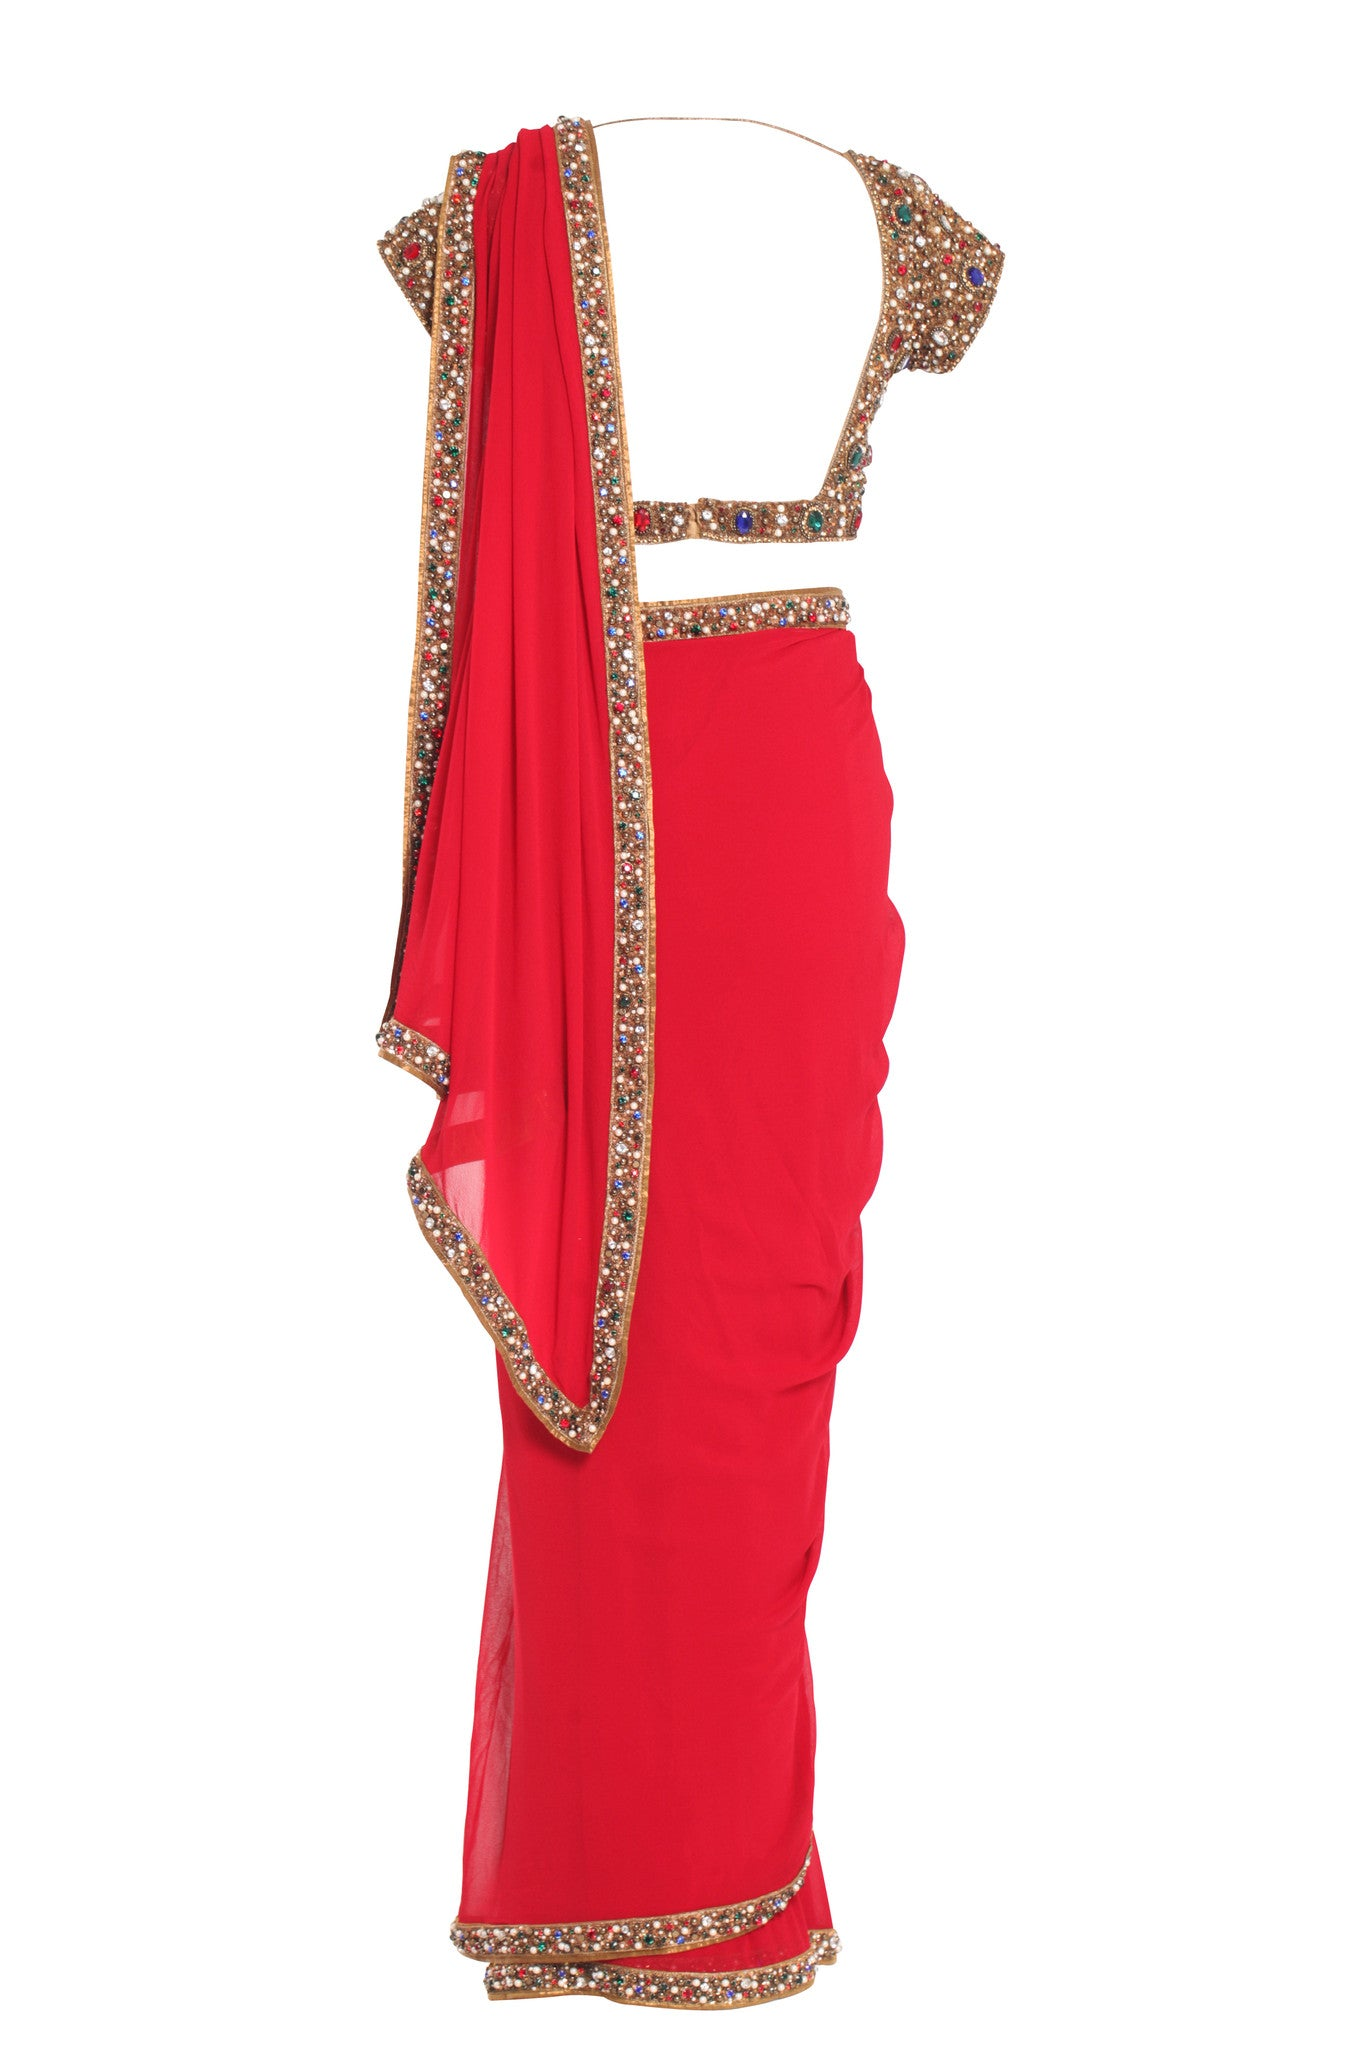 Red Silk Jewelled Saree Seema Khan Mannequin Front